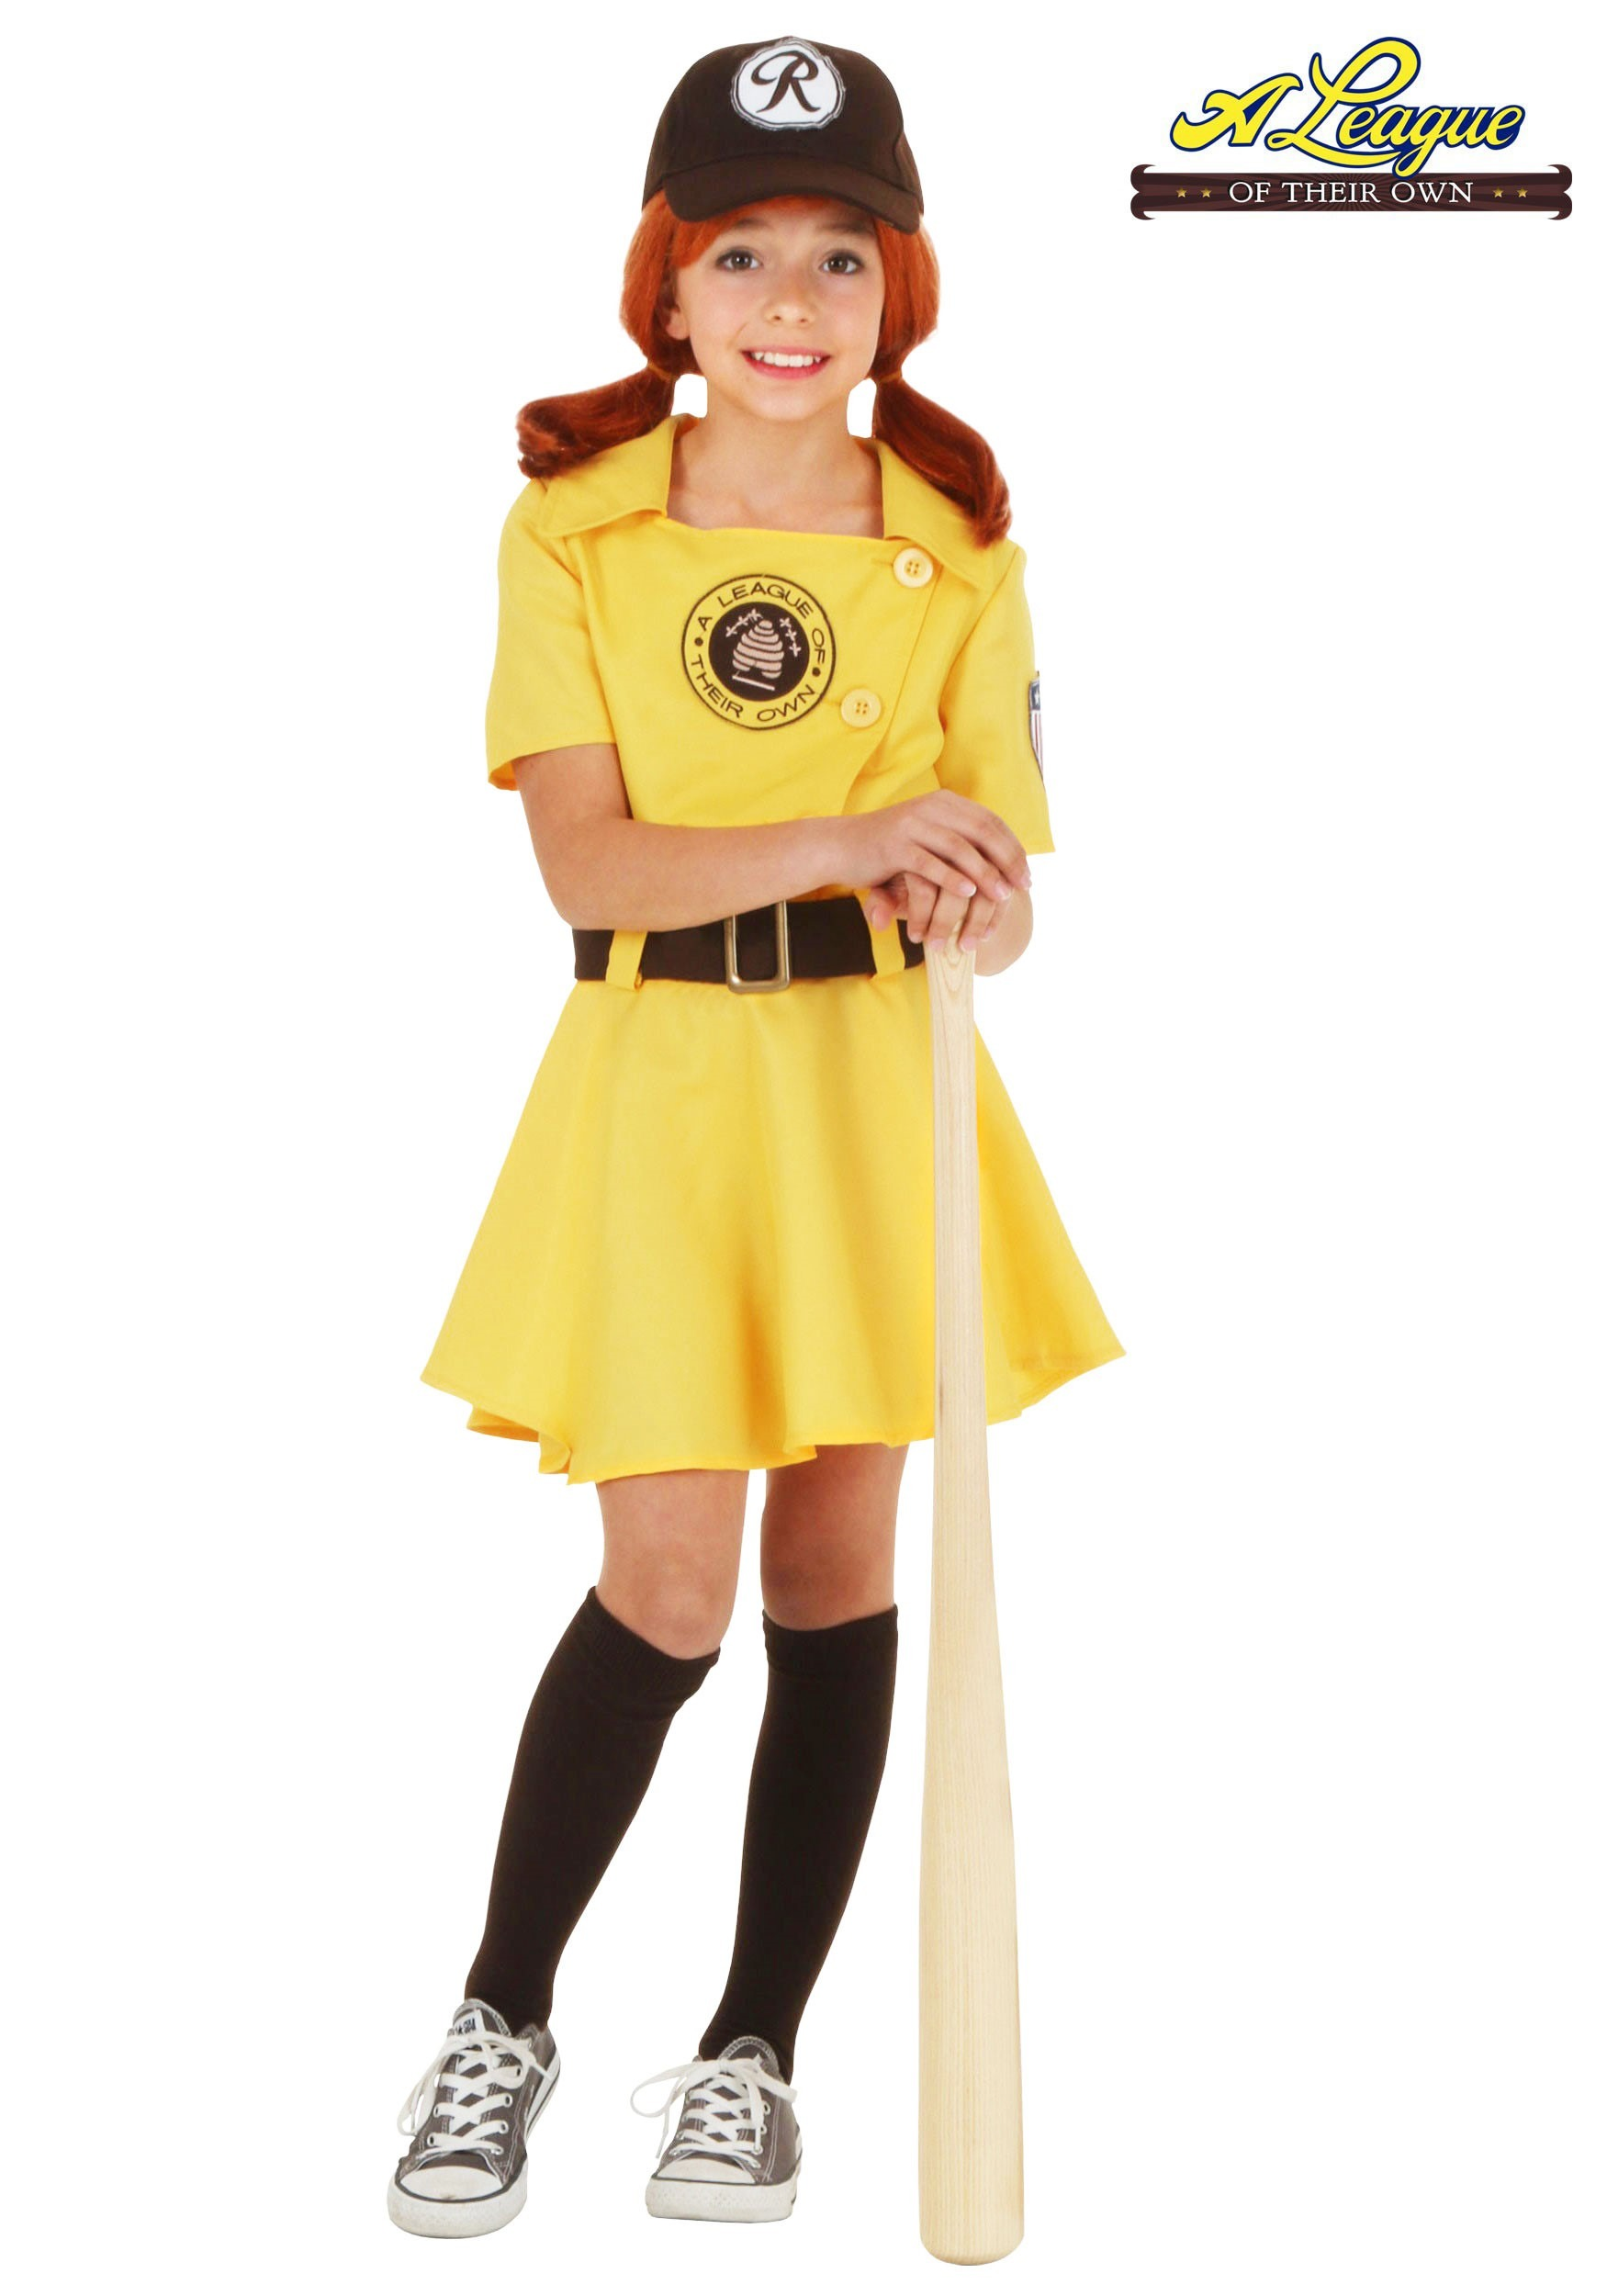 Deluxe Rockford Peaches Costume  |A League Of Their Own Costume